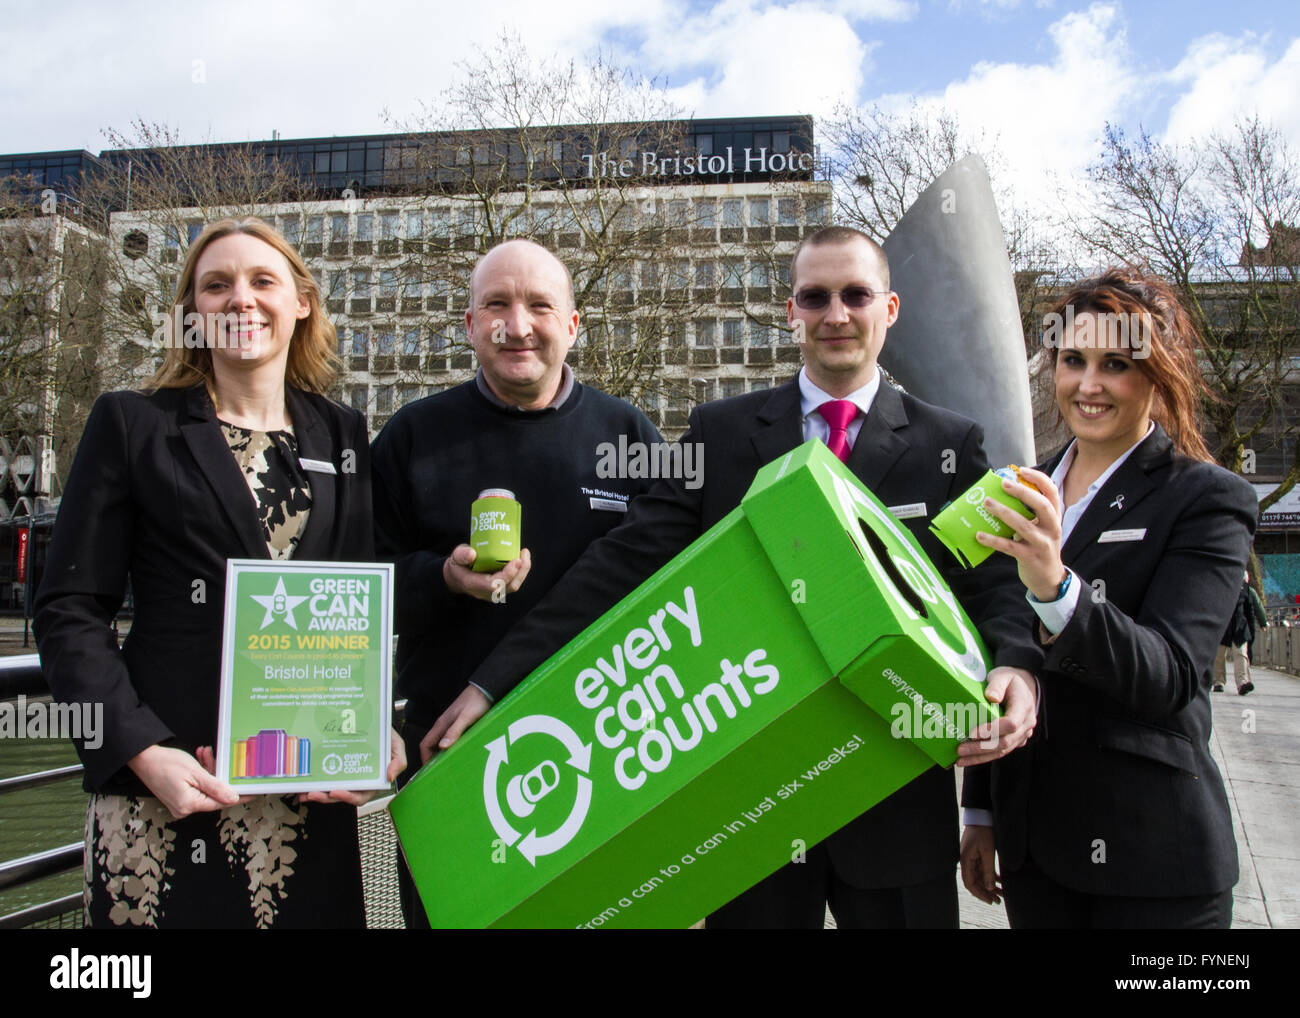 the Bristol hotel wins a award fro collecting cans - Stock Image